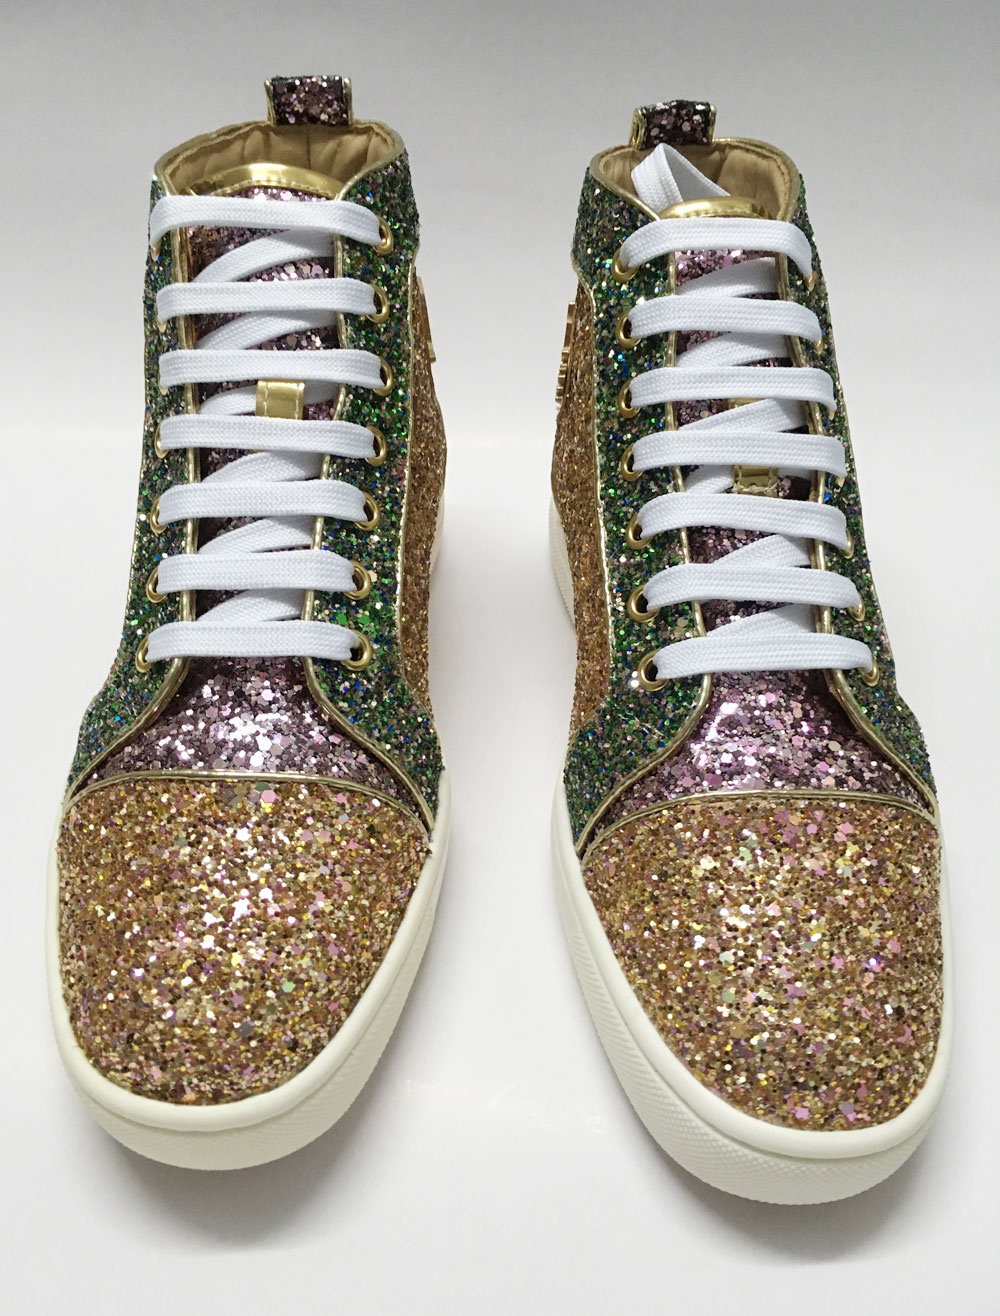 Gold Skate Shoes Men's Sequin Flat Lace Up Round Toe Glitter Casual Shoes